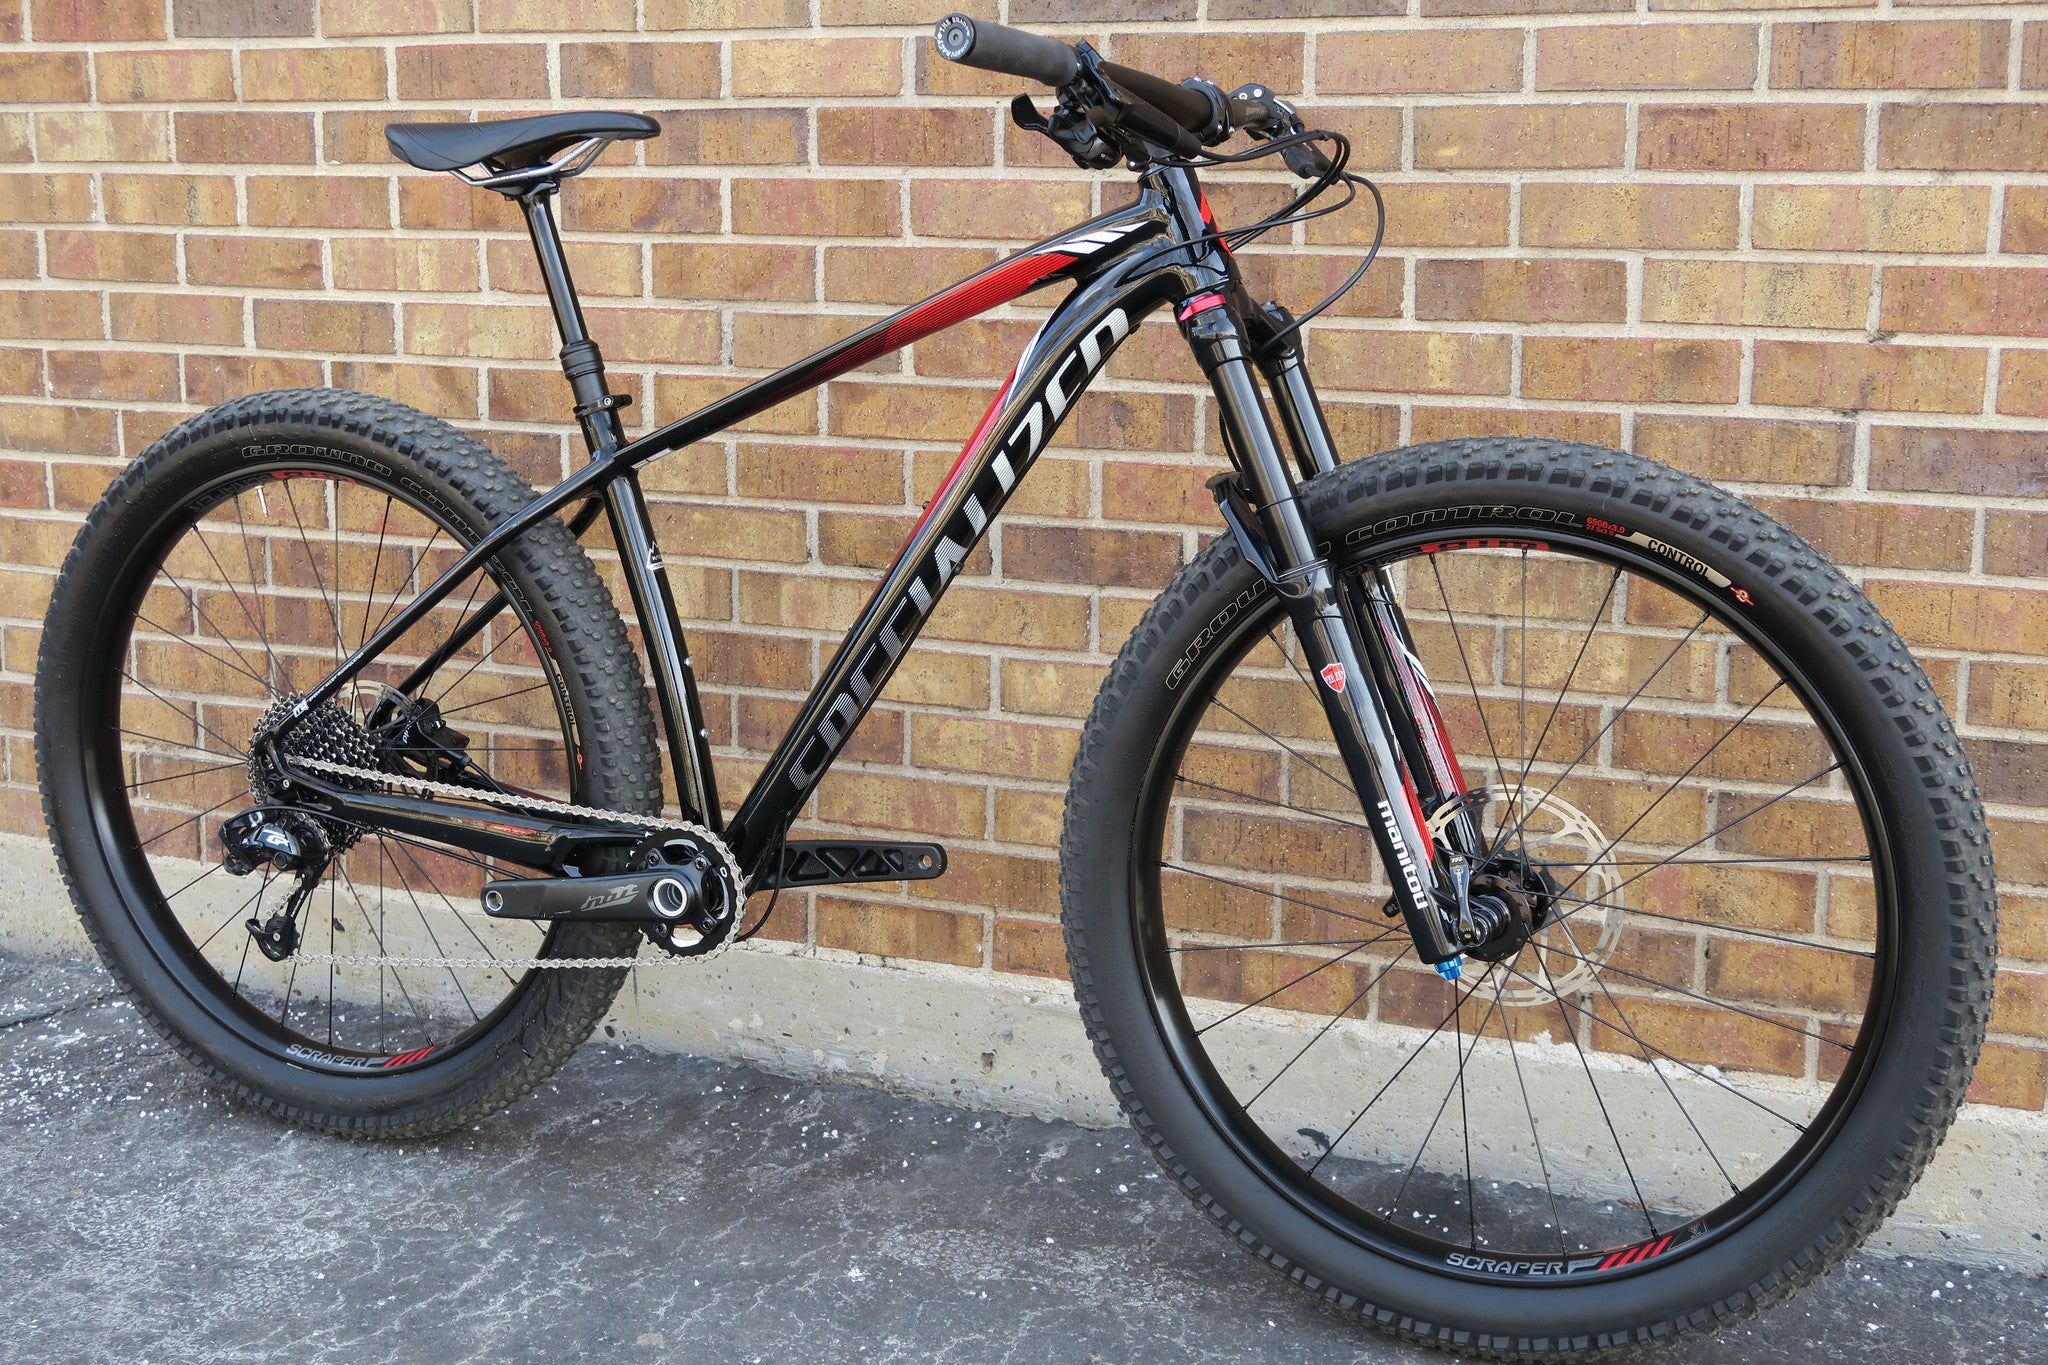 2016 SPECIALIZED FUSE EXPERT 6FATTIE 27.5+